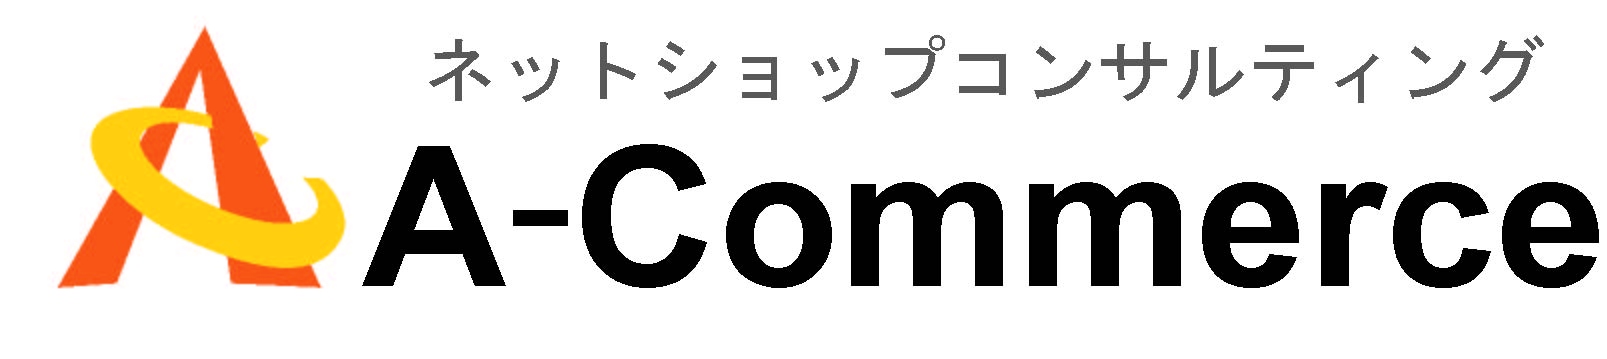 A-Commerce.net